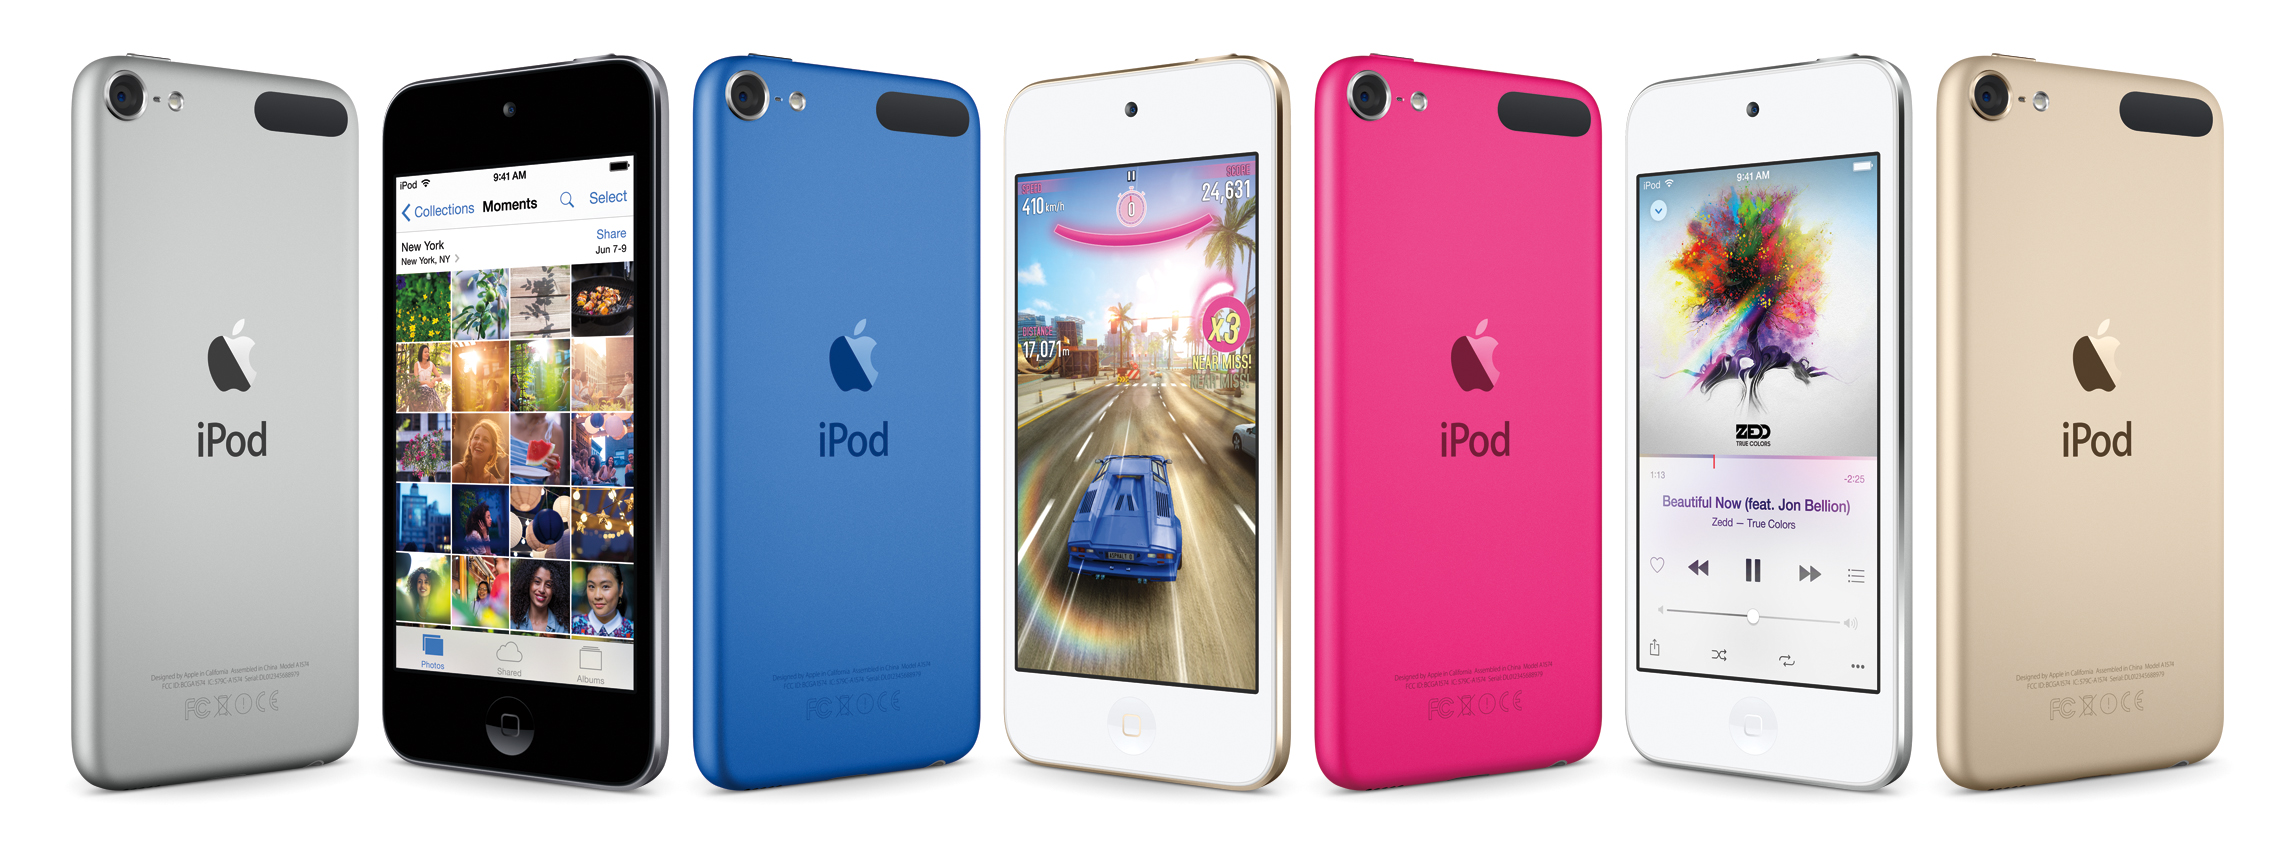 Apple's updates iPod Touch amid declining sales